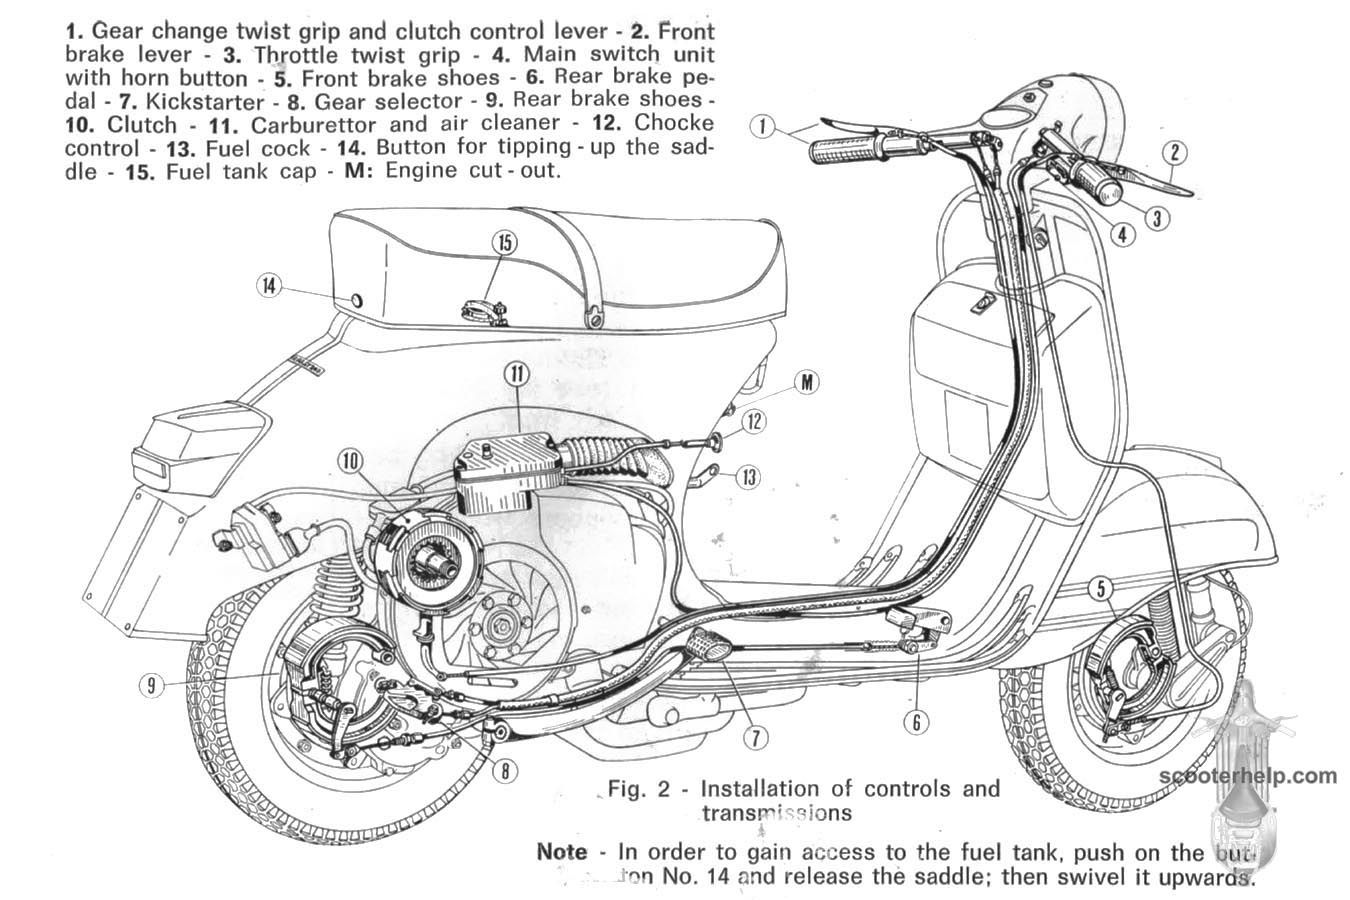 http://scooterhelp.com/manuals/VSE1T.manual/07.jpg